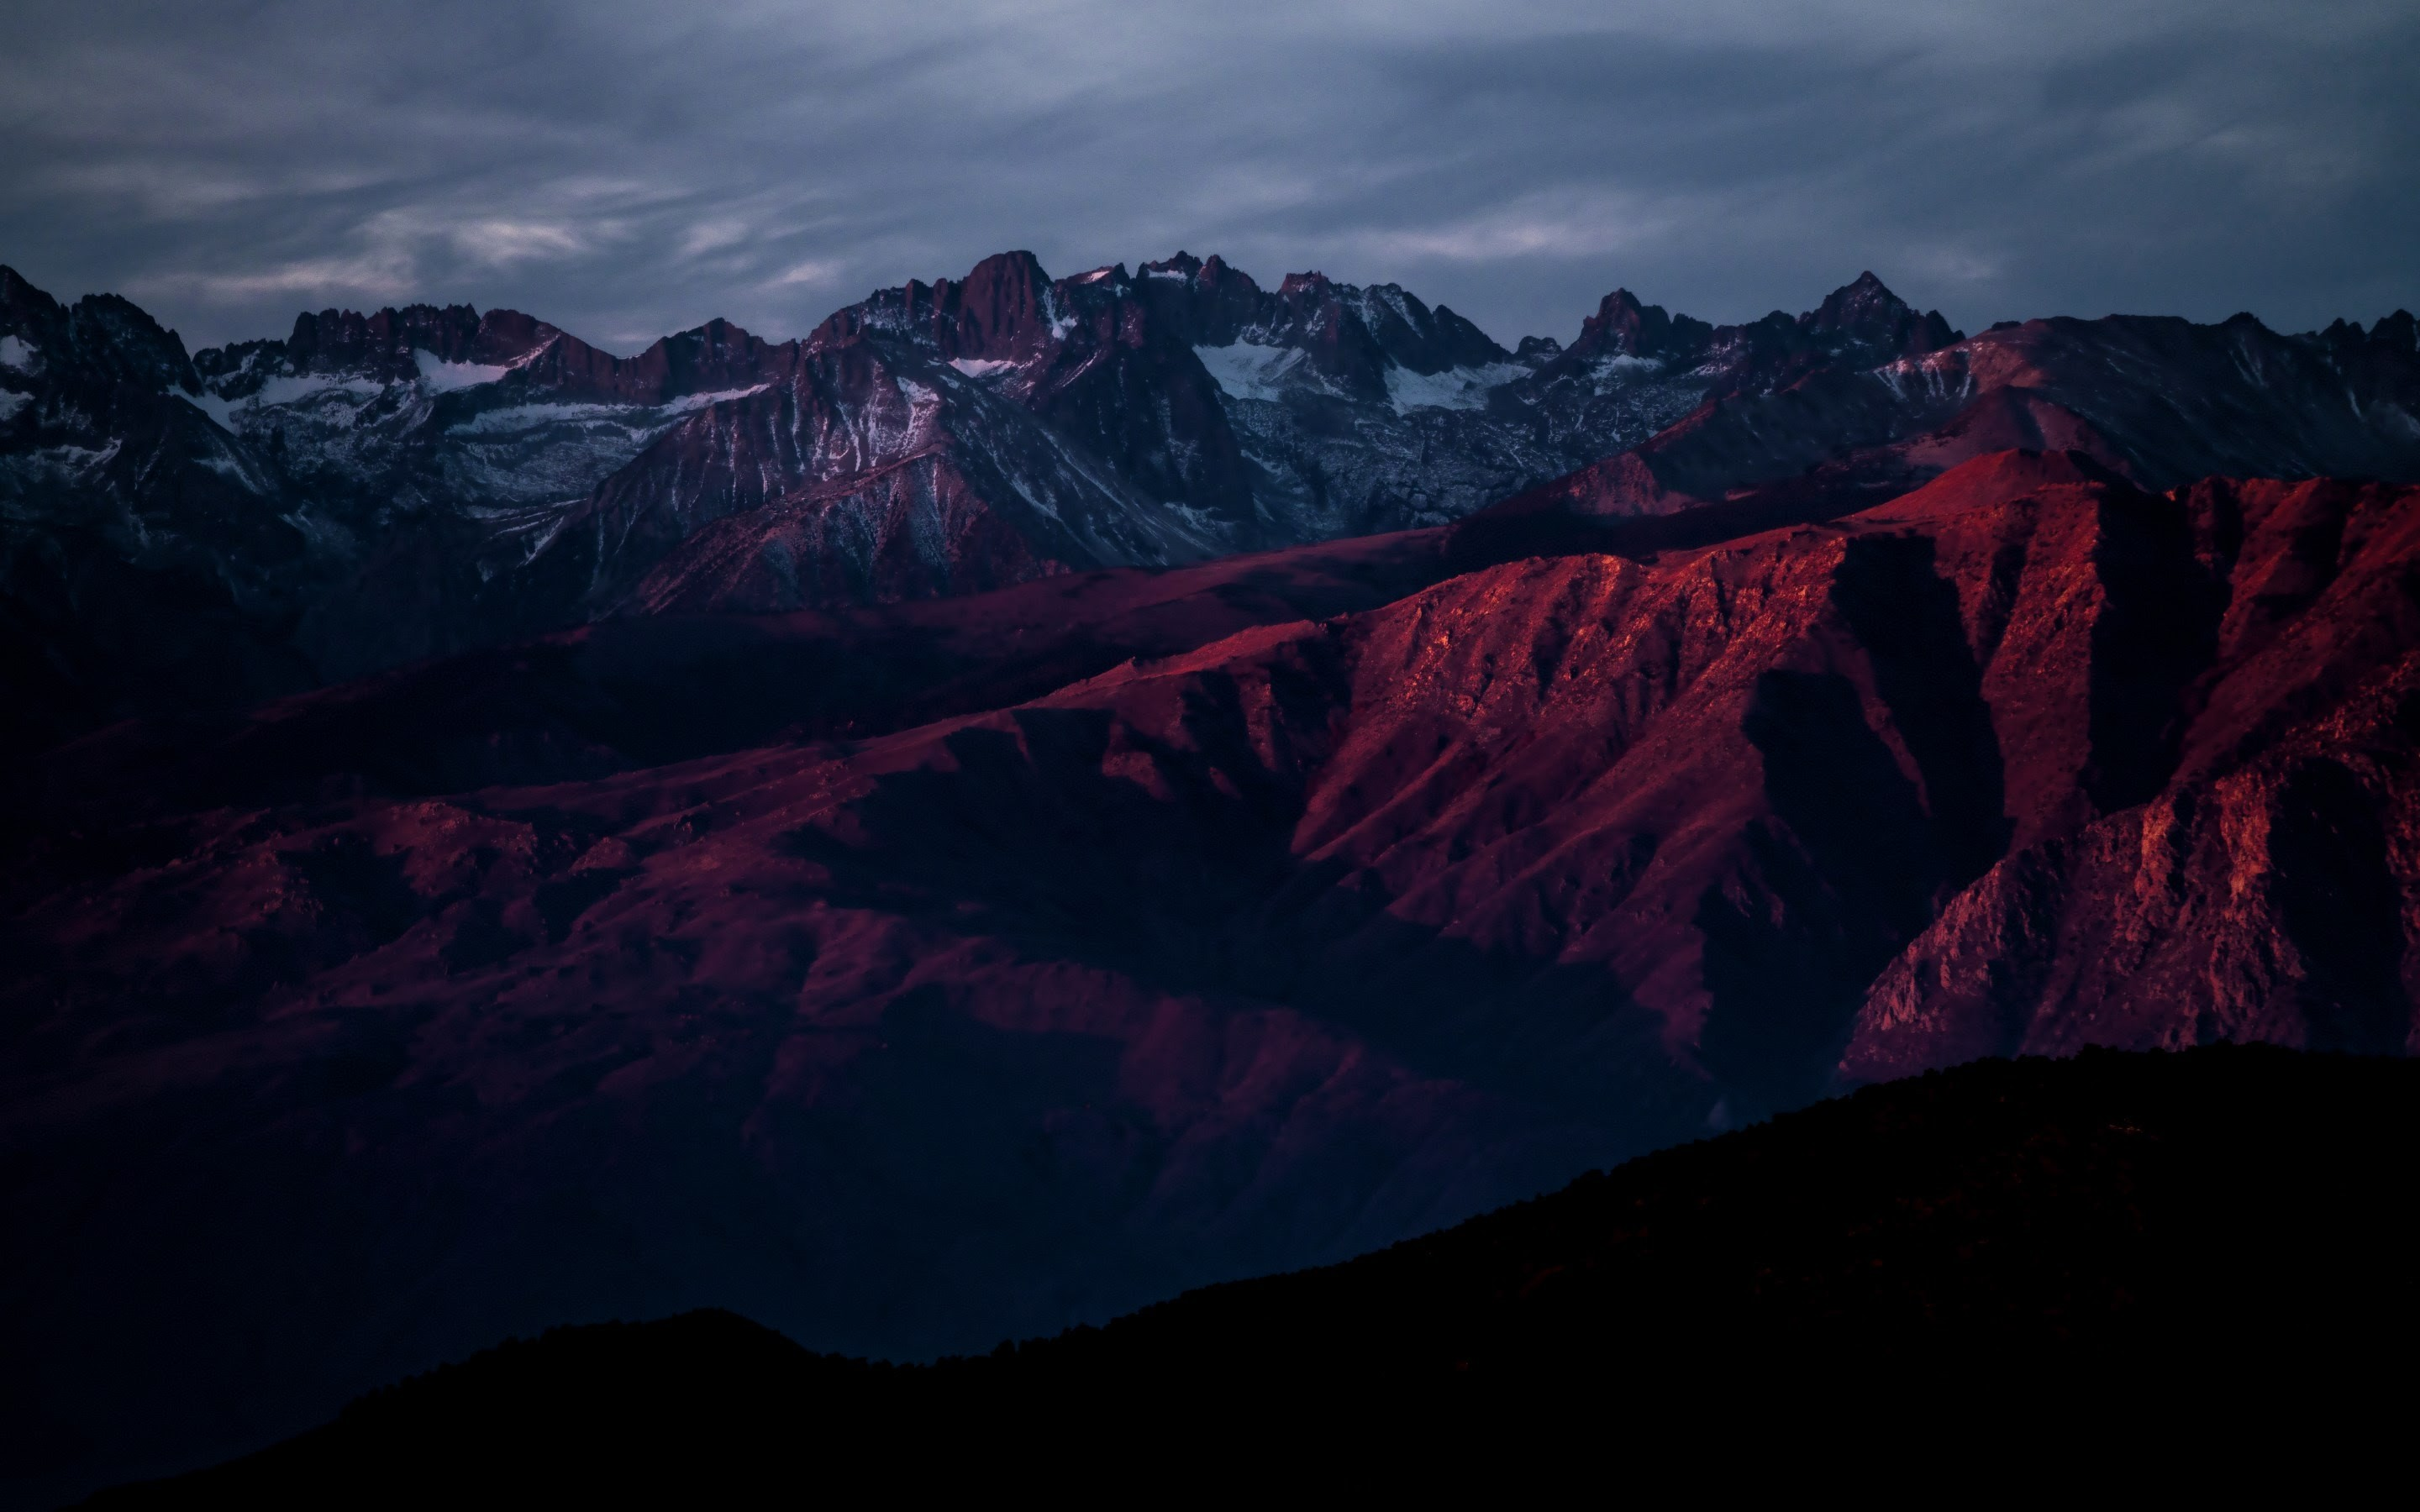 4K HD Wallpaper: The Red Landscape · Nature Photography by John Towner